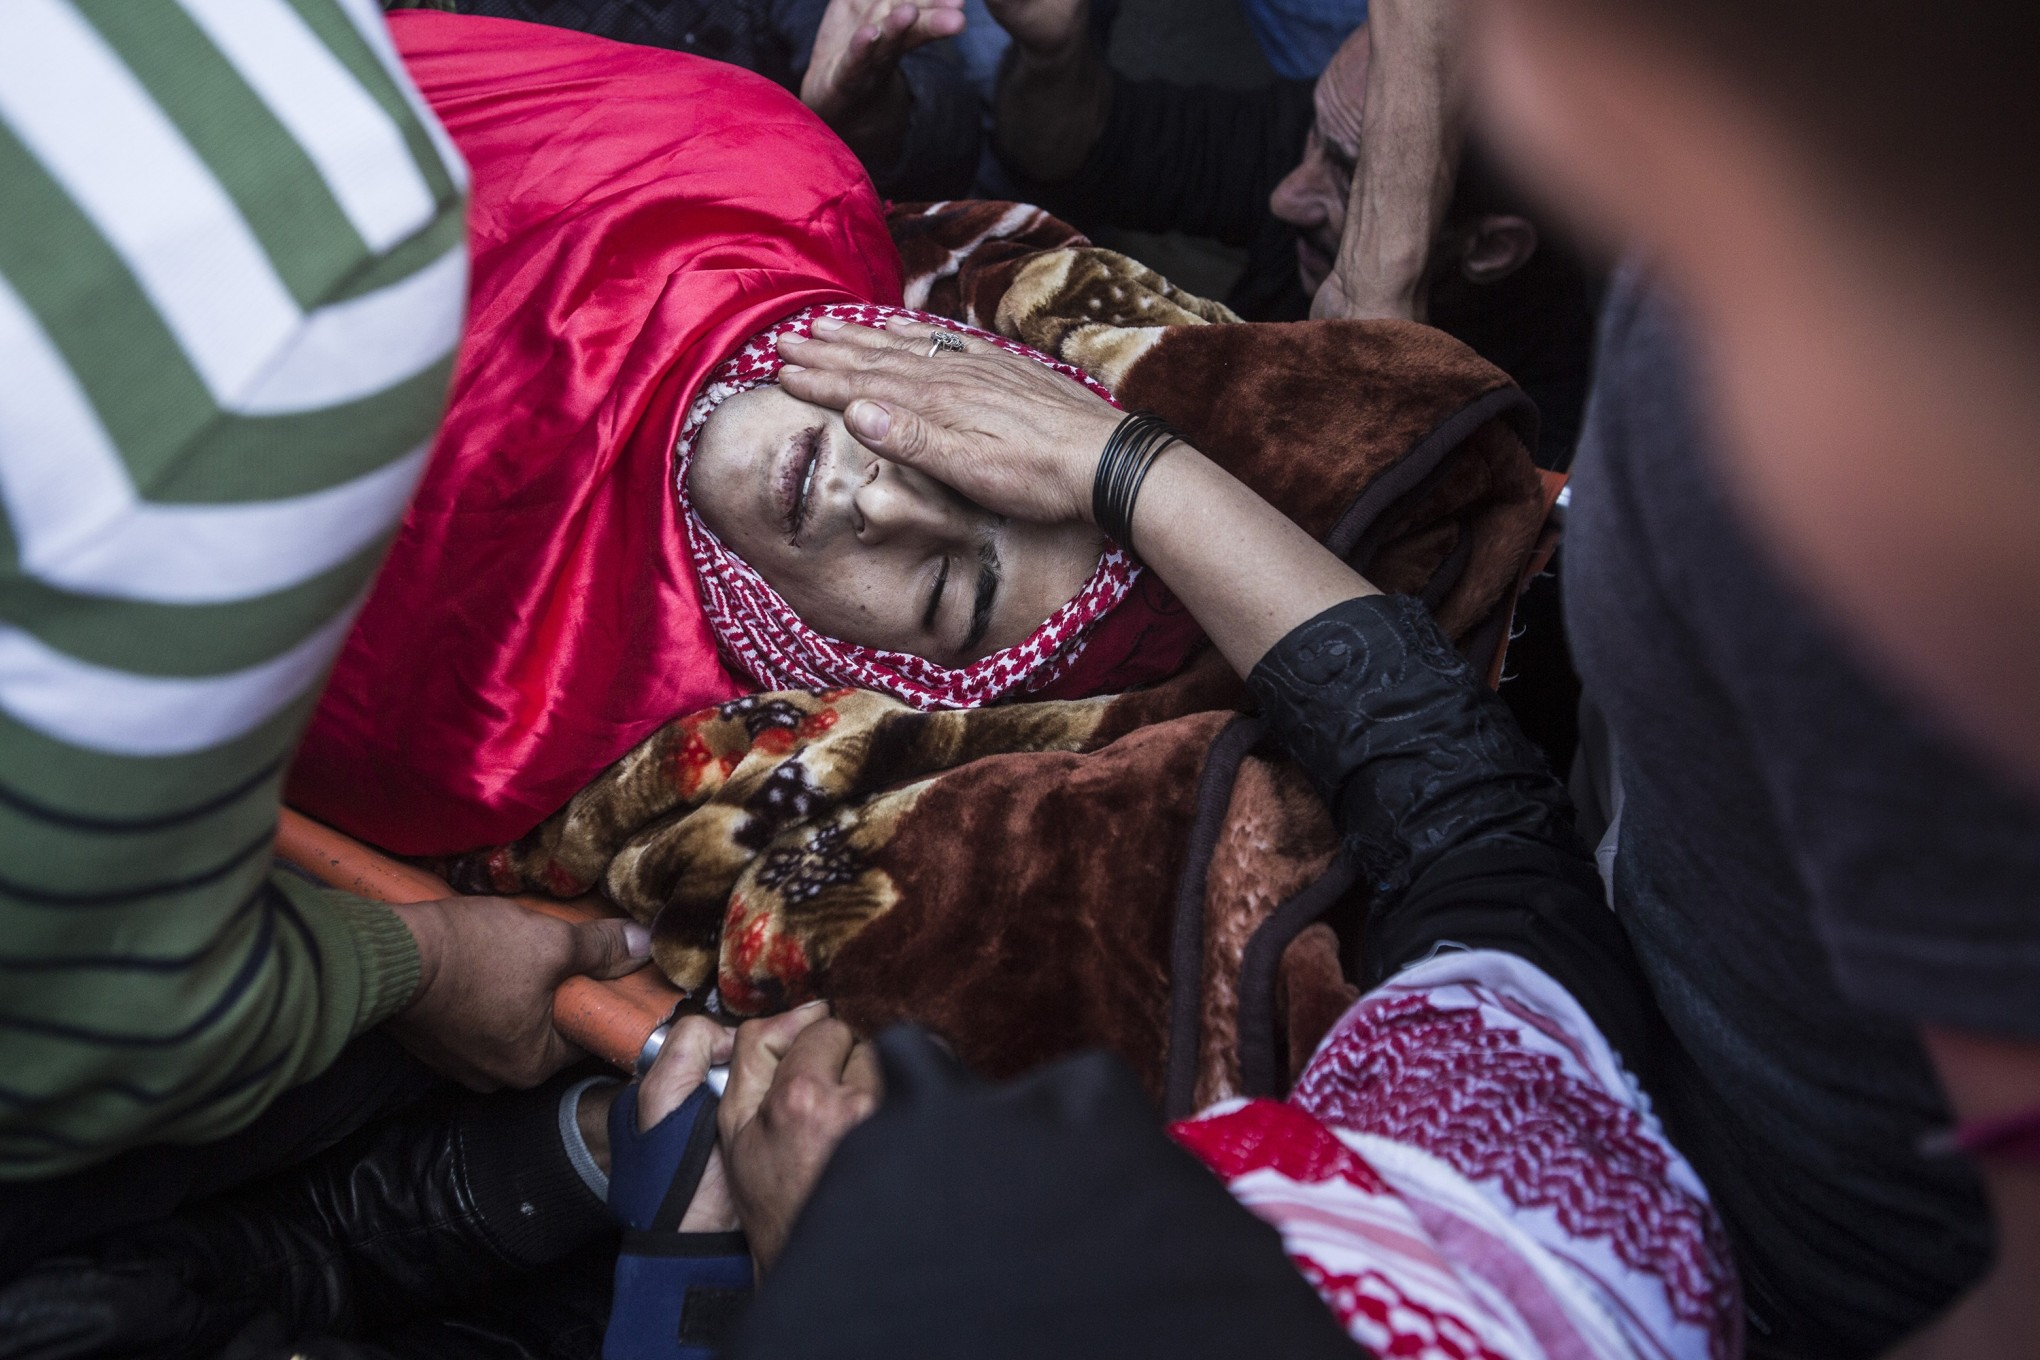 Khalid Mahmoud al-Jawabreh's mother touches him for the last time